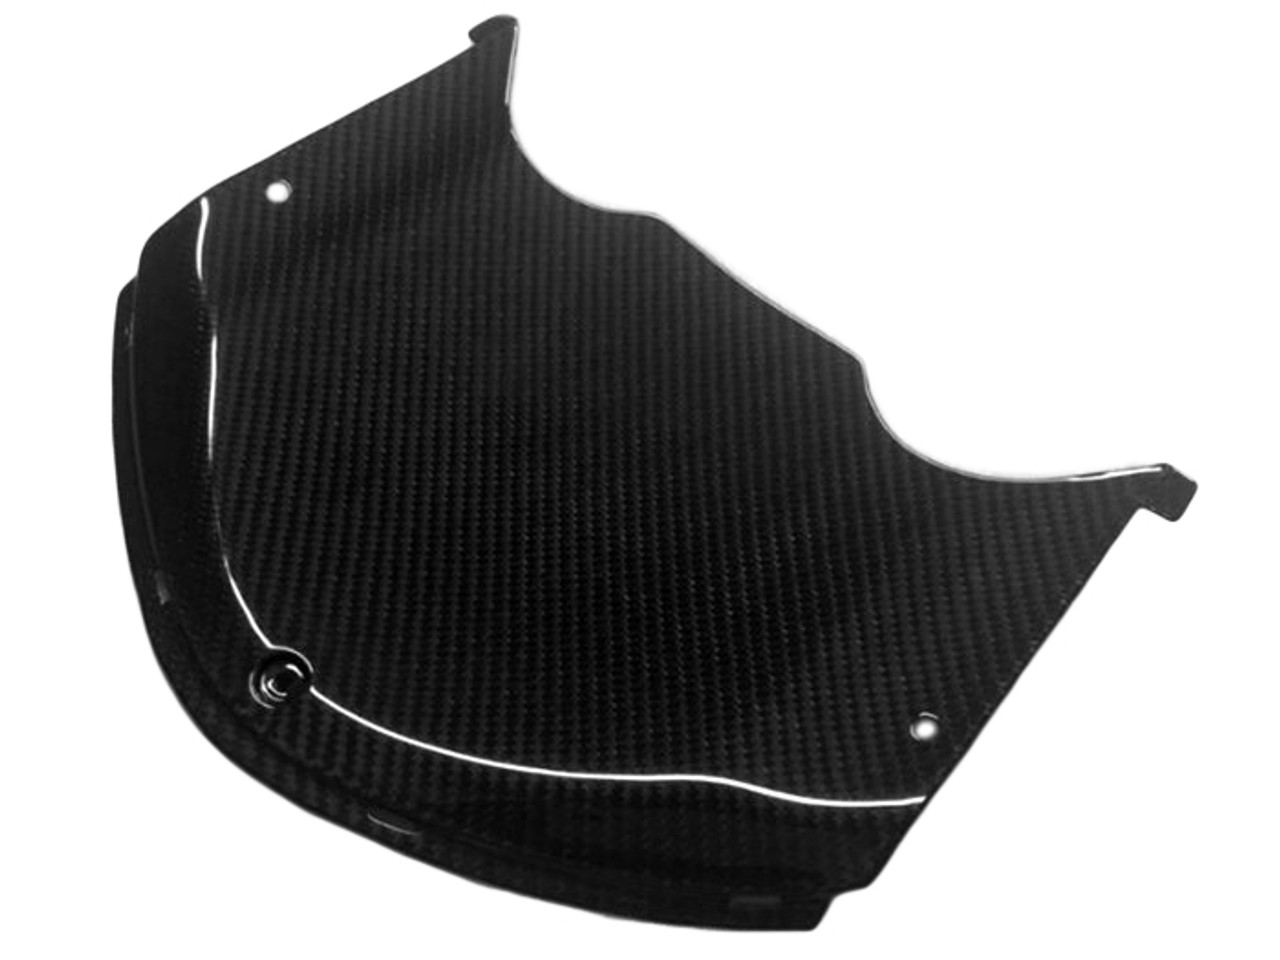 Cockpit Cover in Glossy Twill Weave Carbon Fiber for Kawasaki ZX14-ZZR1400 2006+